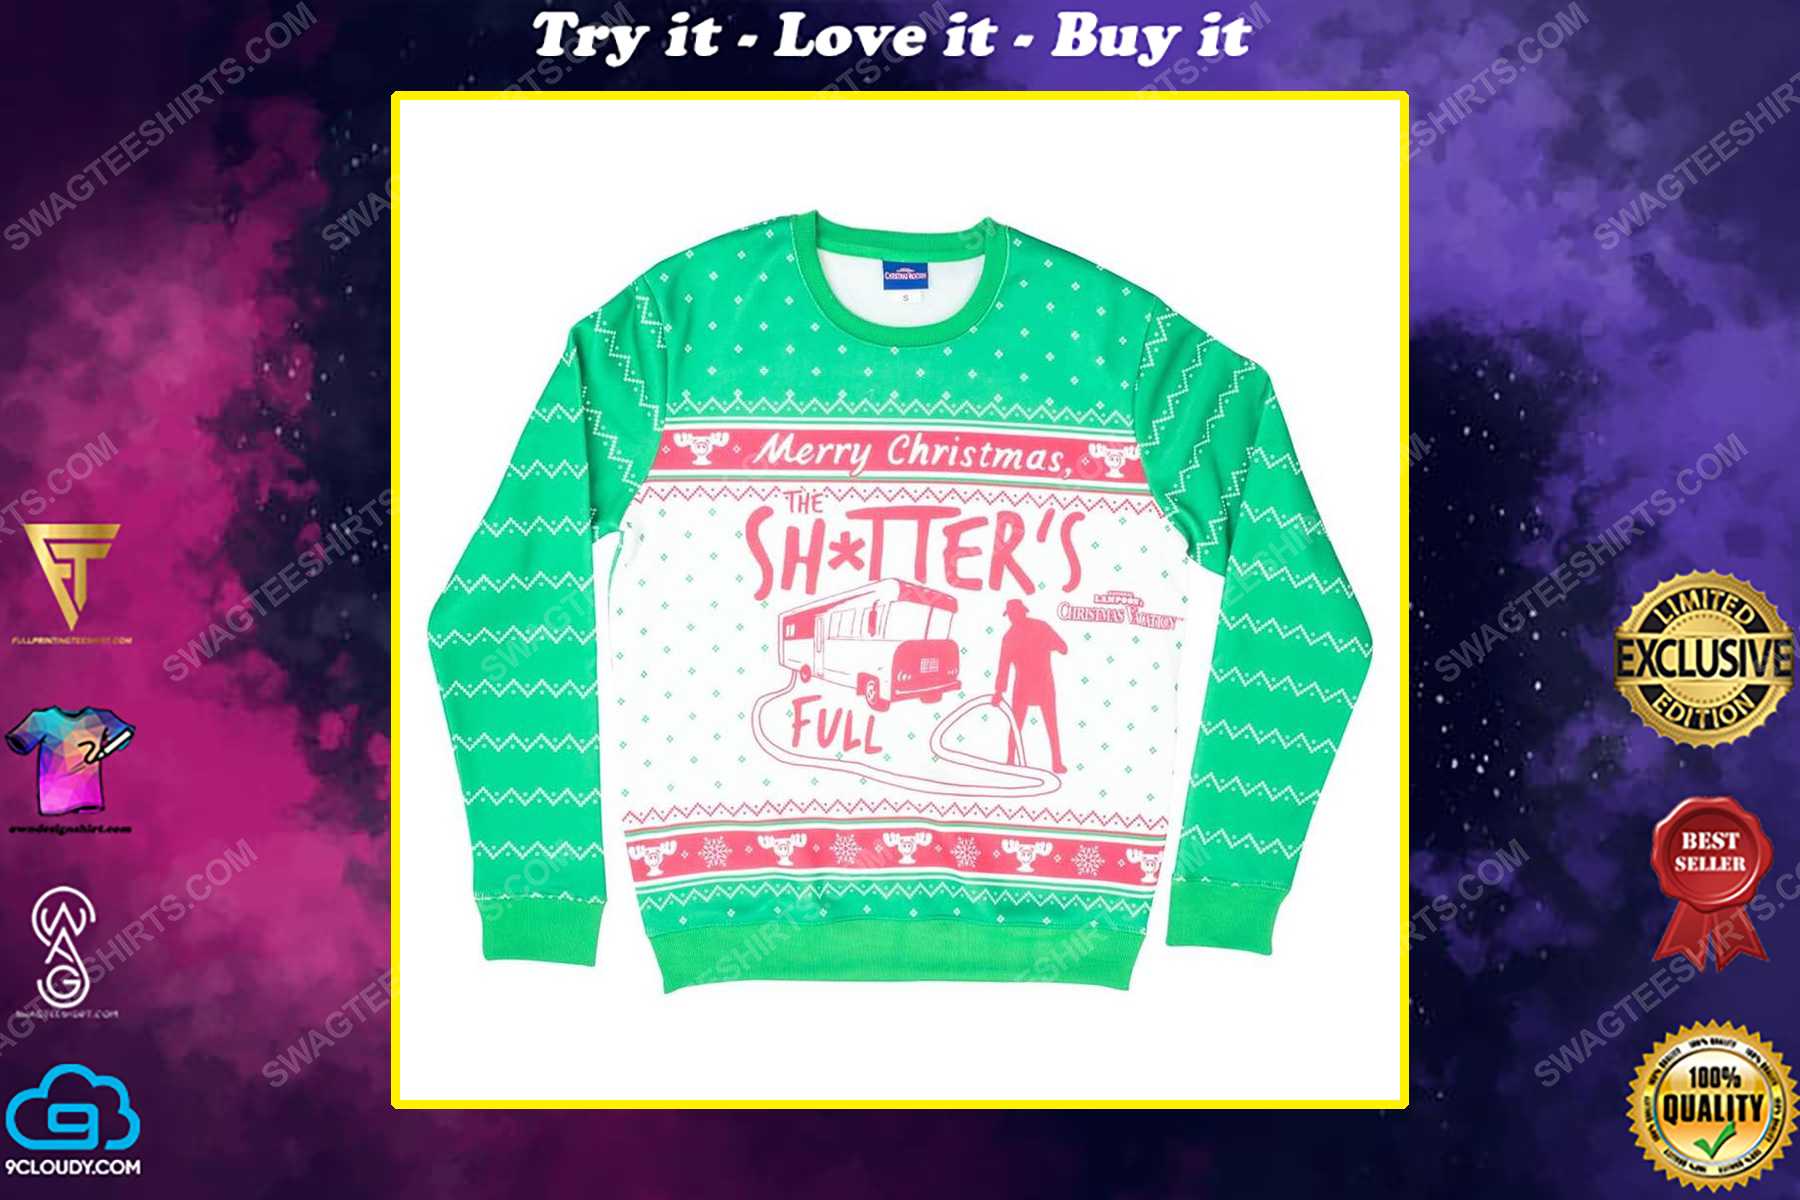 National lampoon's christmas vacation merry christmas shitter was full ugly christmas sweater